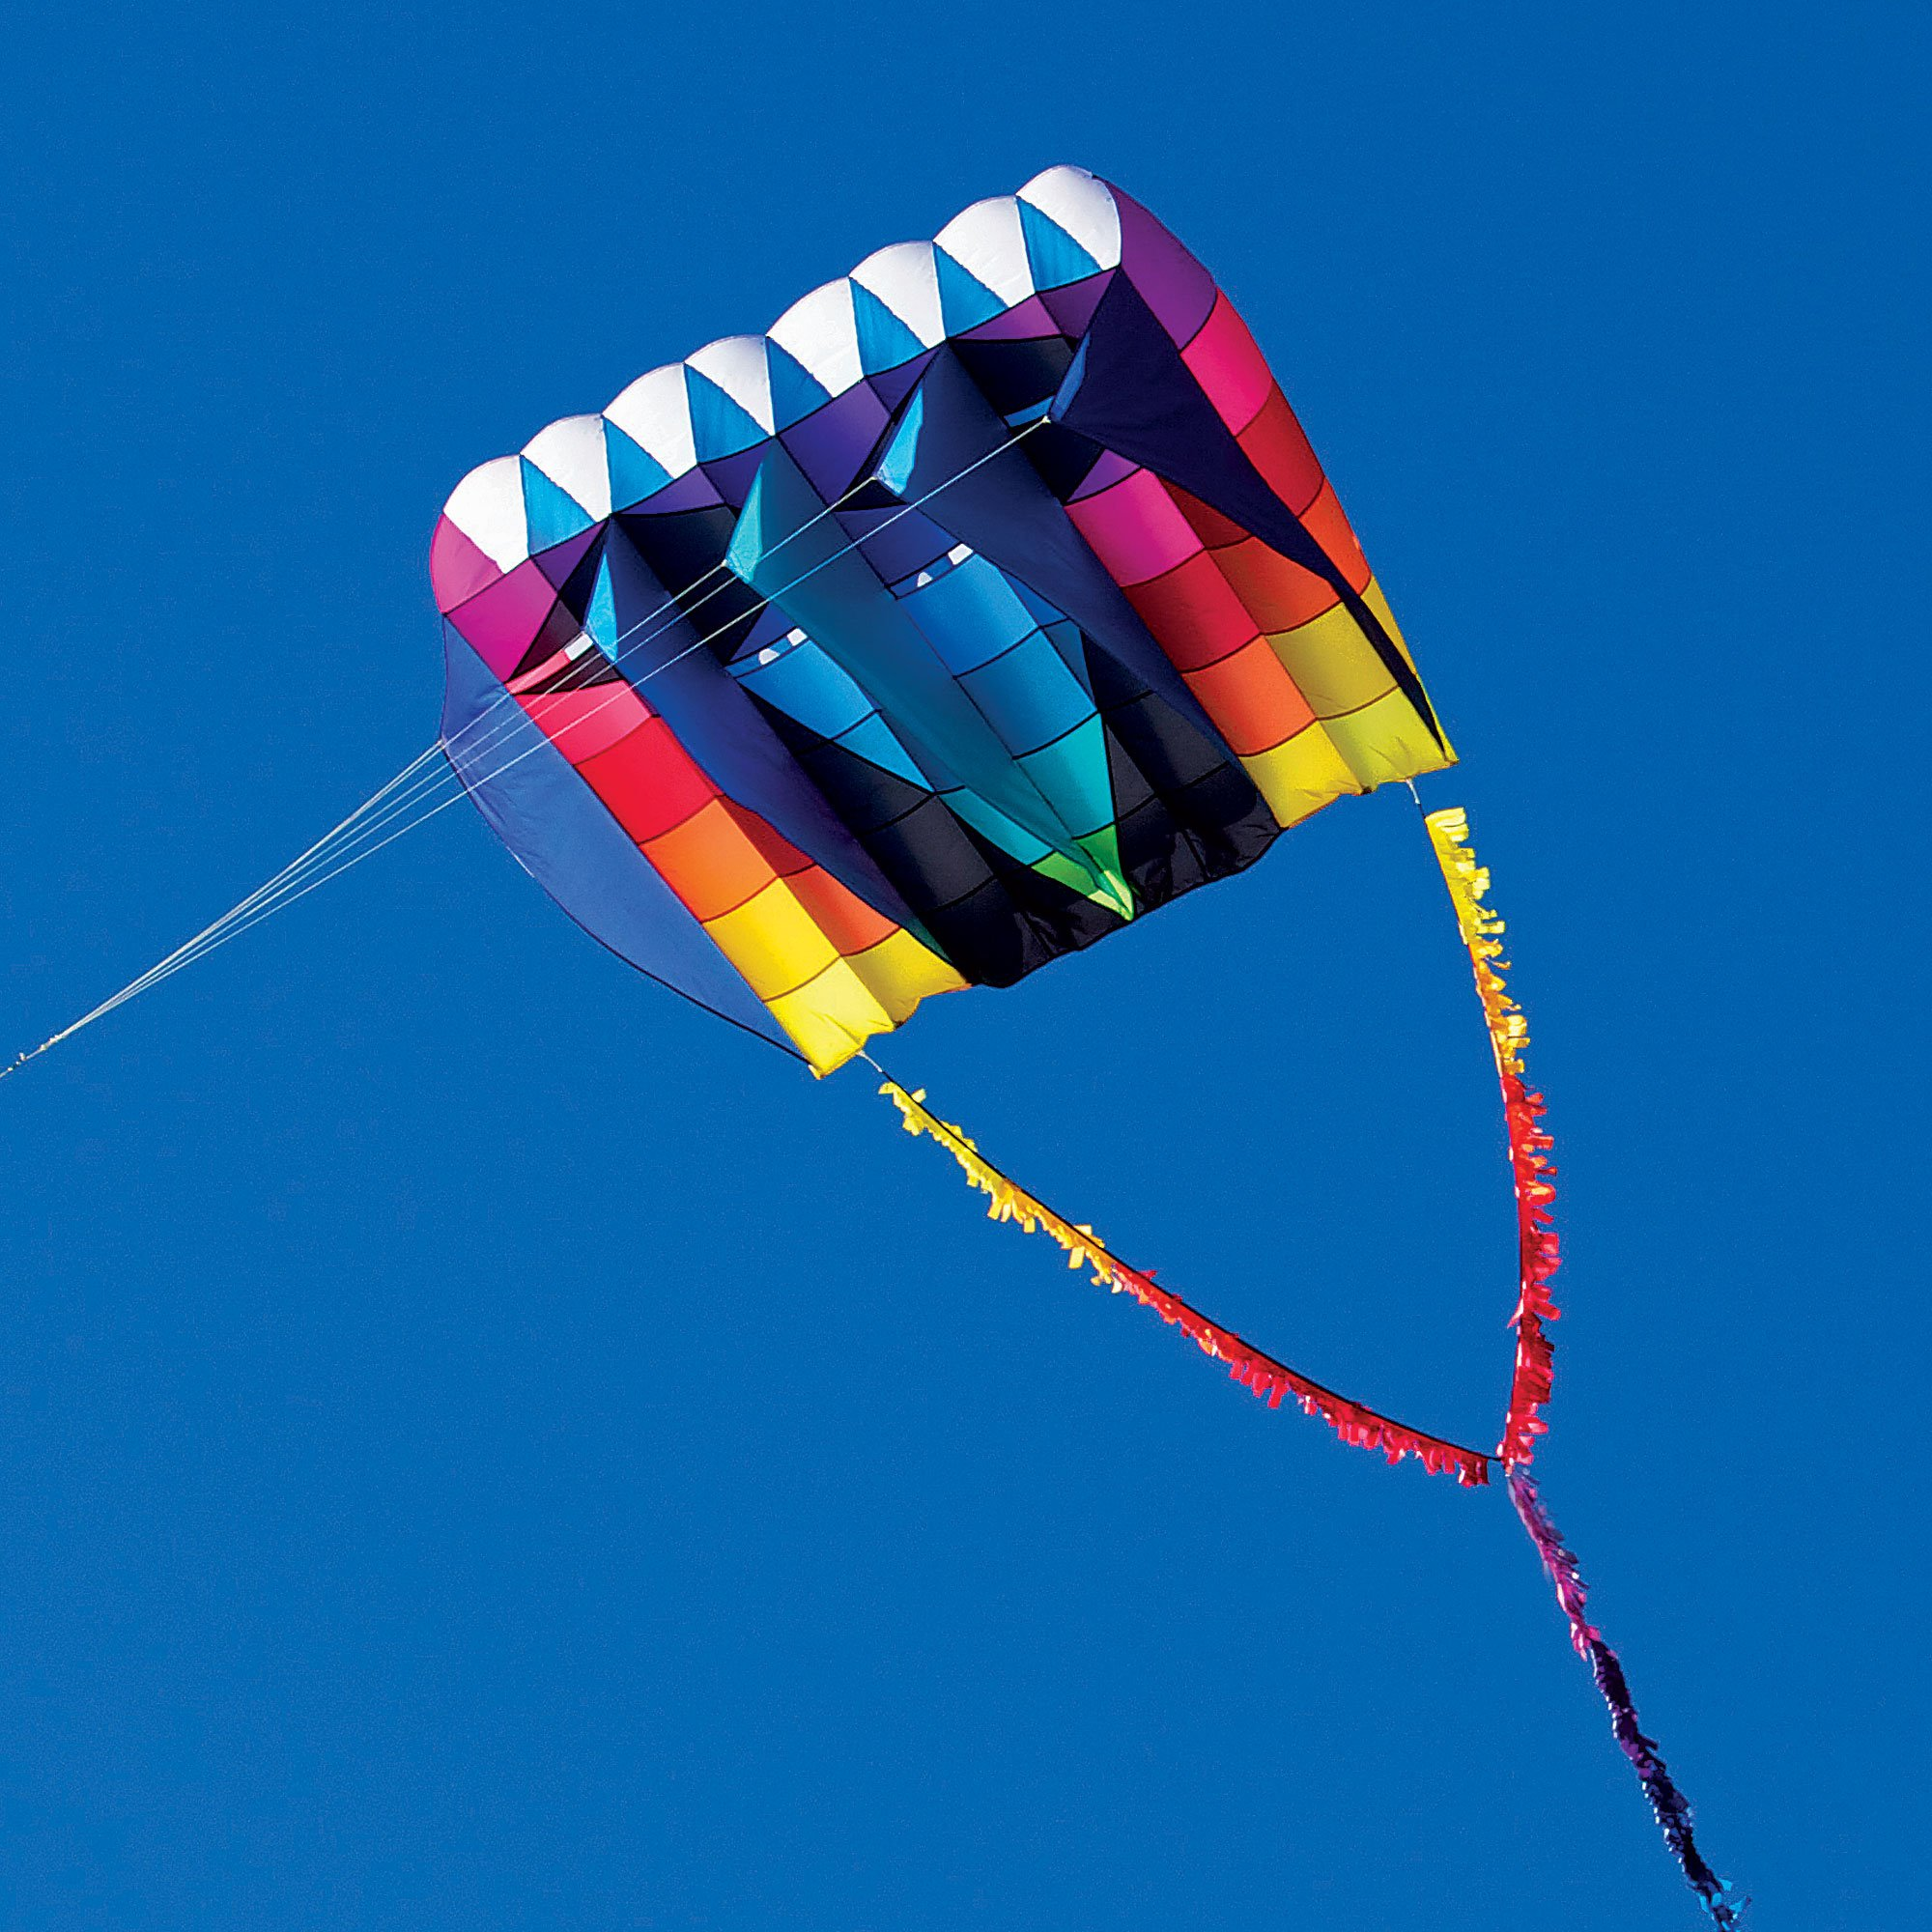 Into The Wind UltraFoil 30 Kite